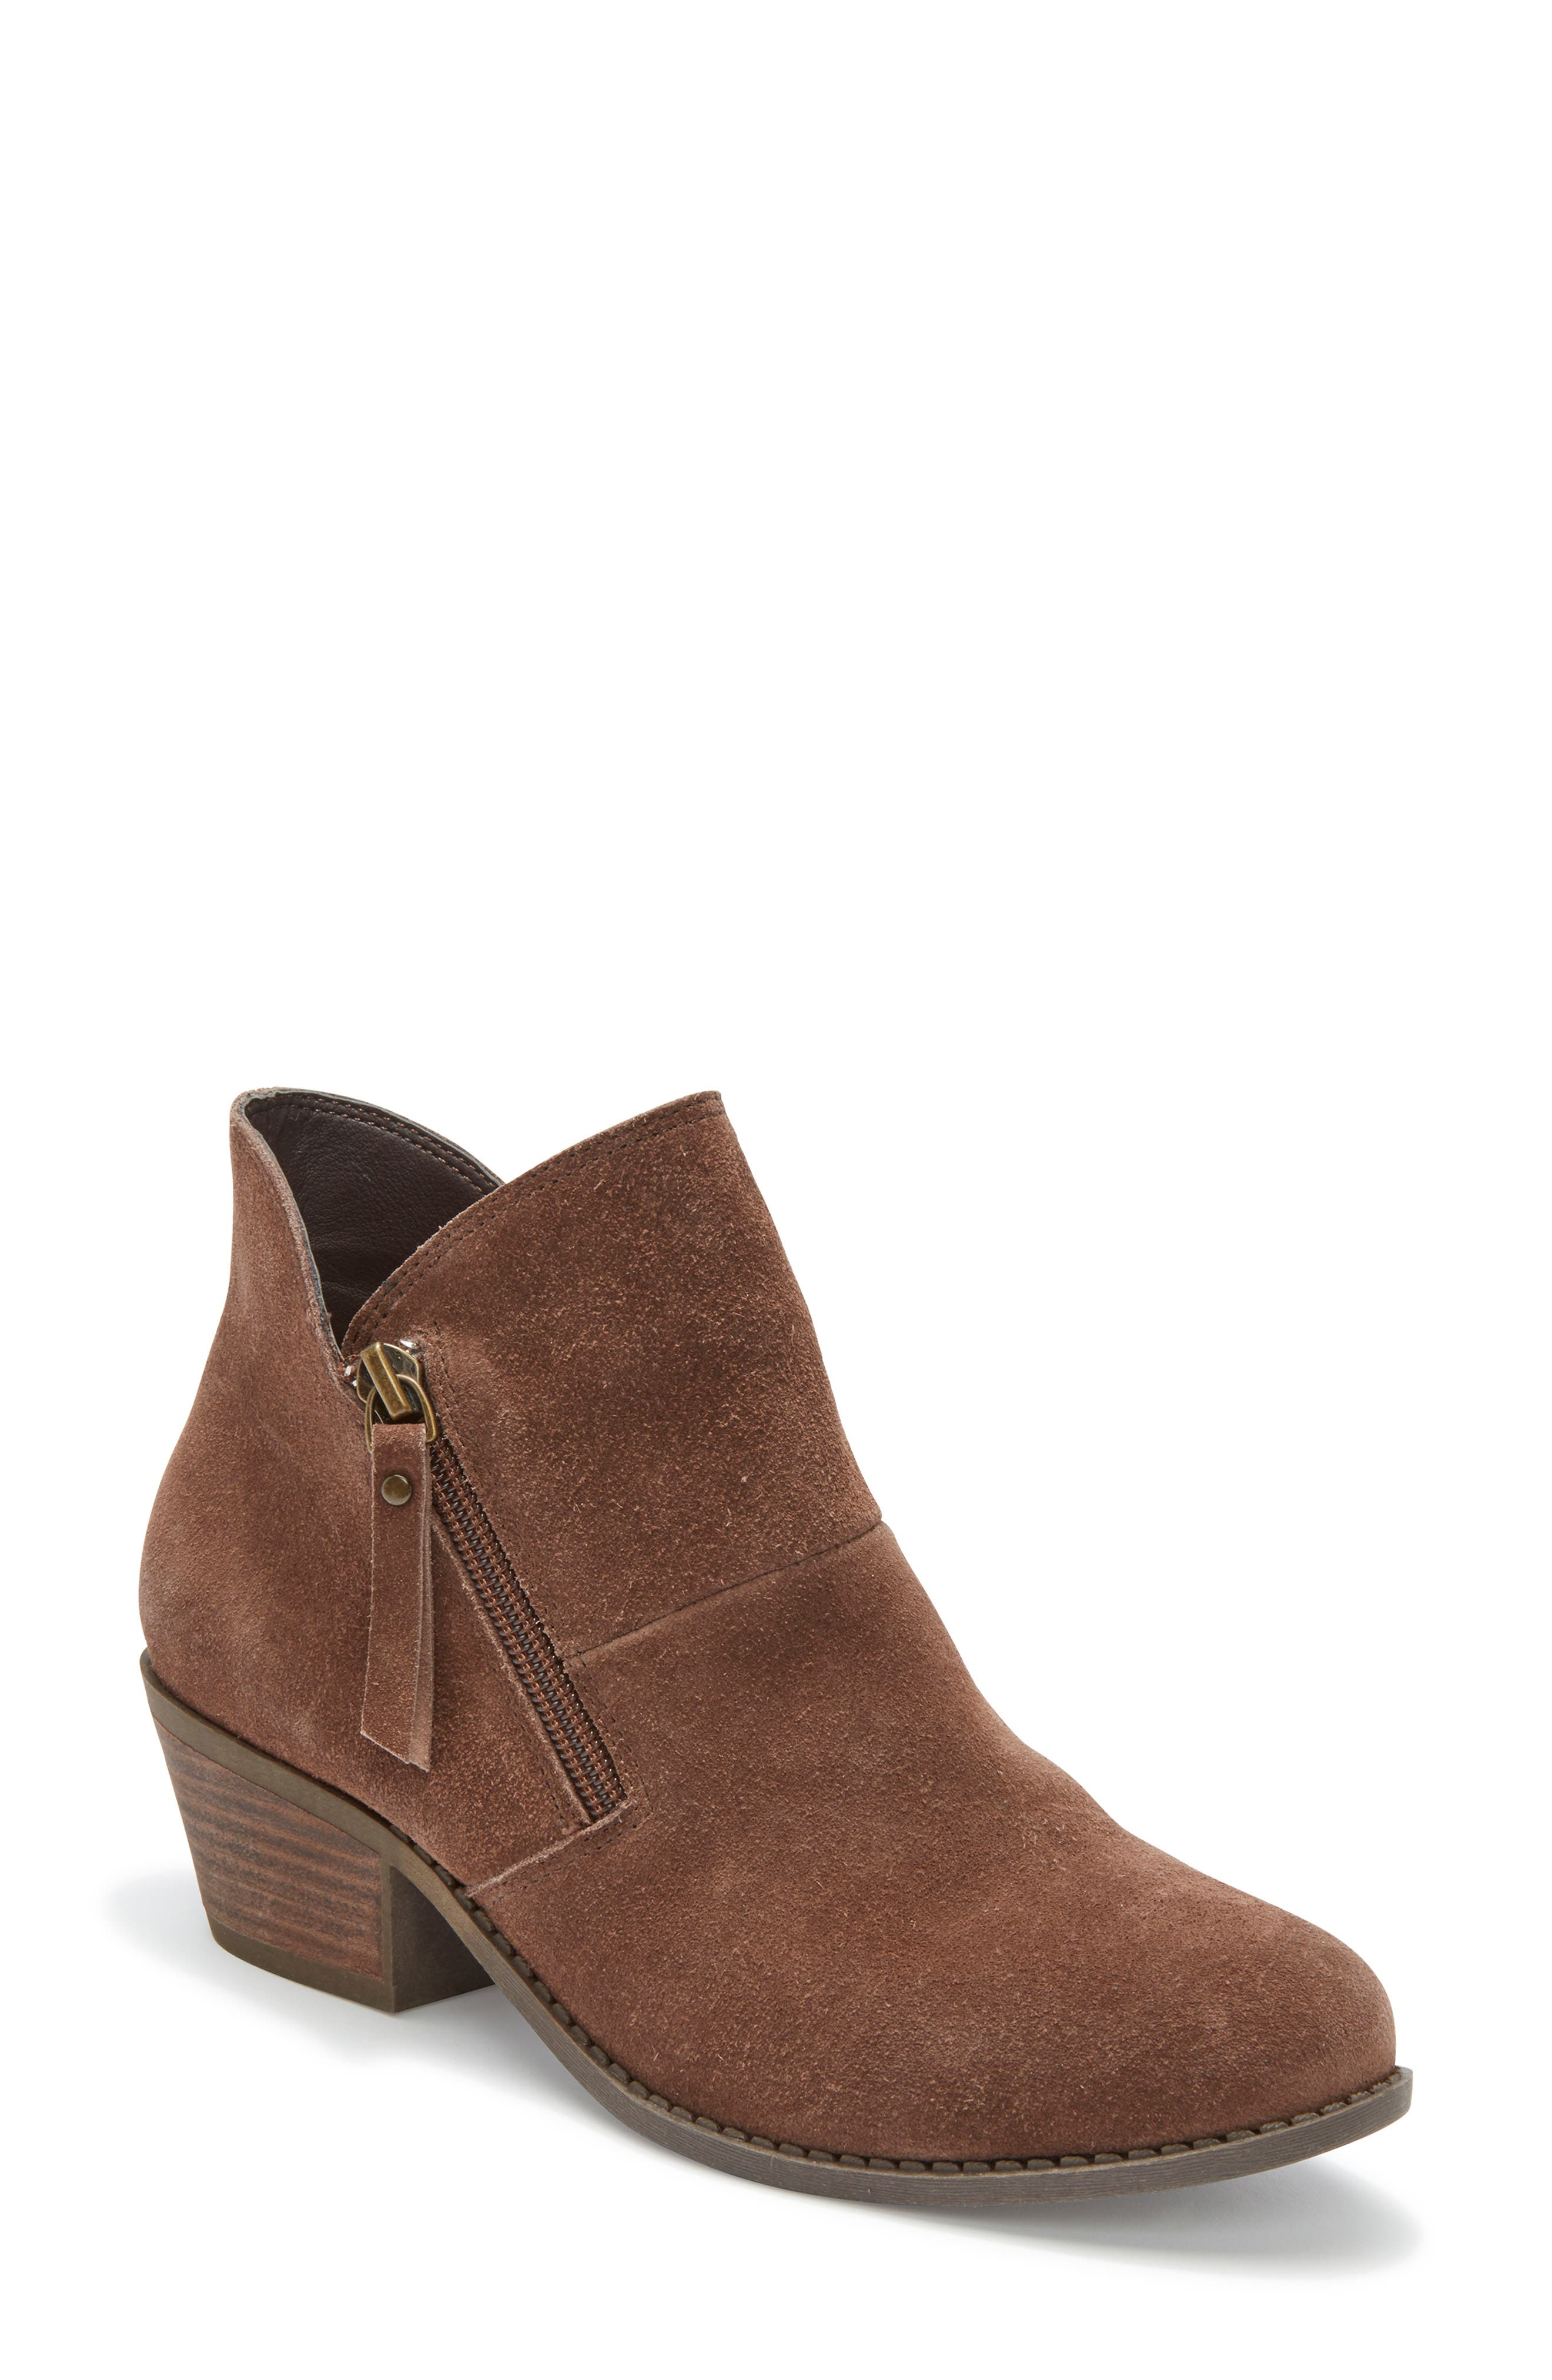 Me Too Zippora Bootie- Brown